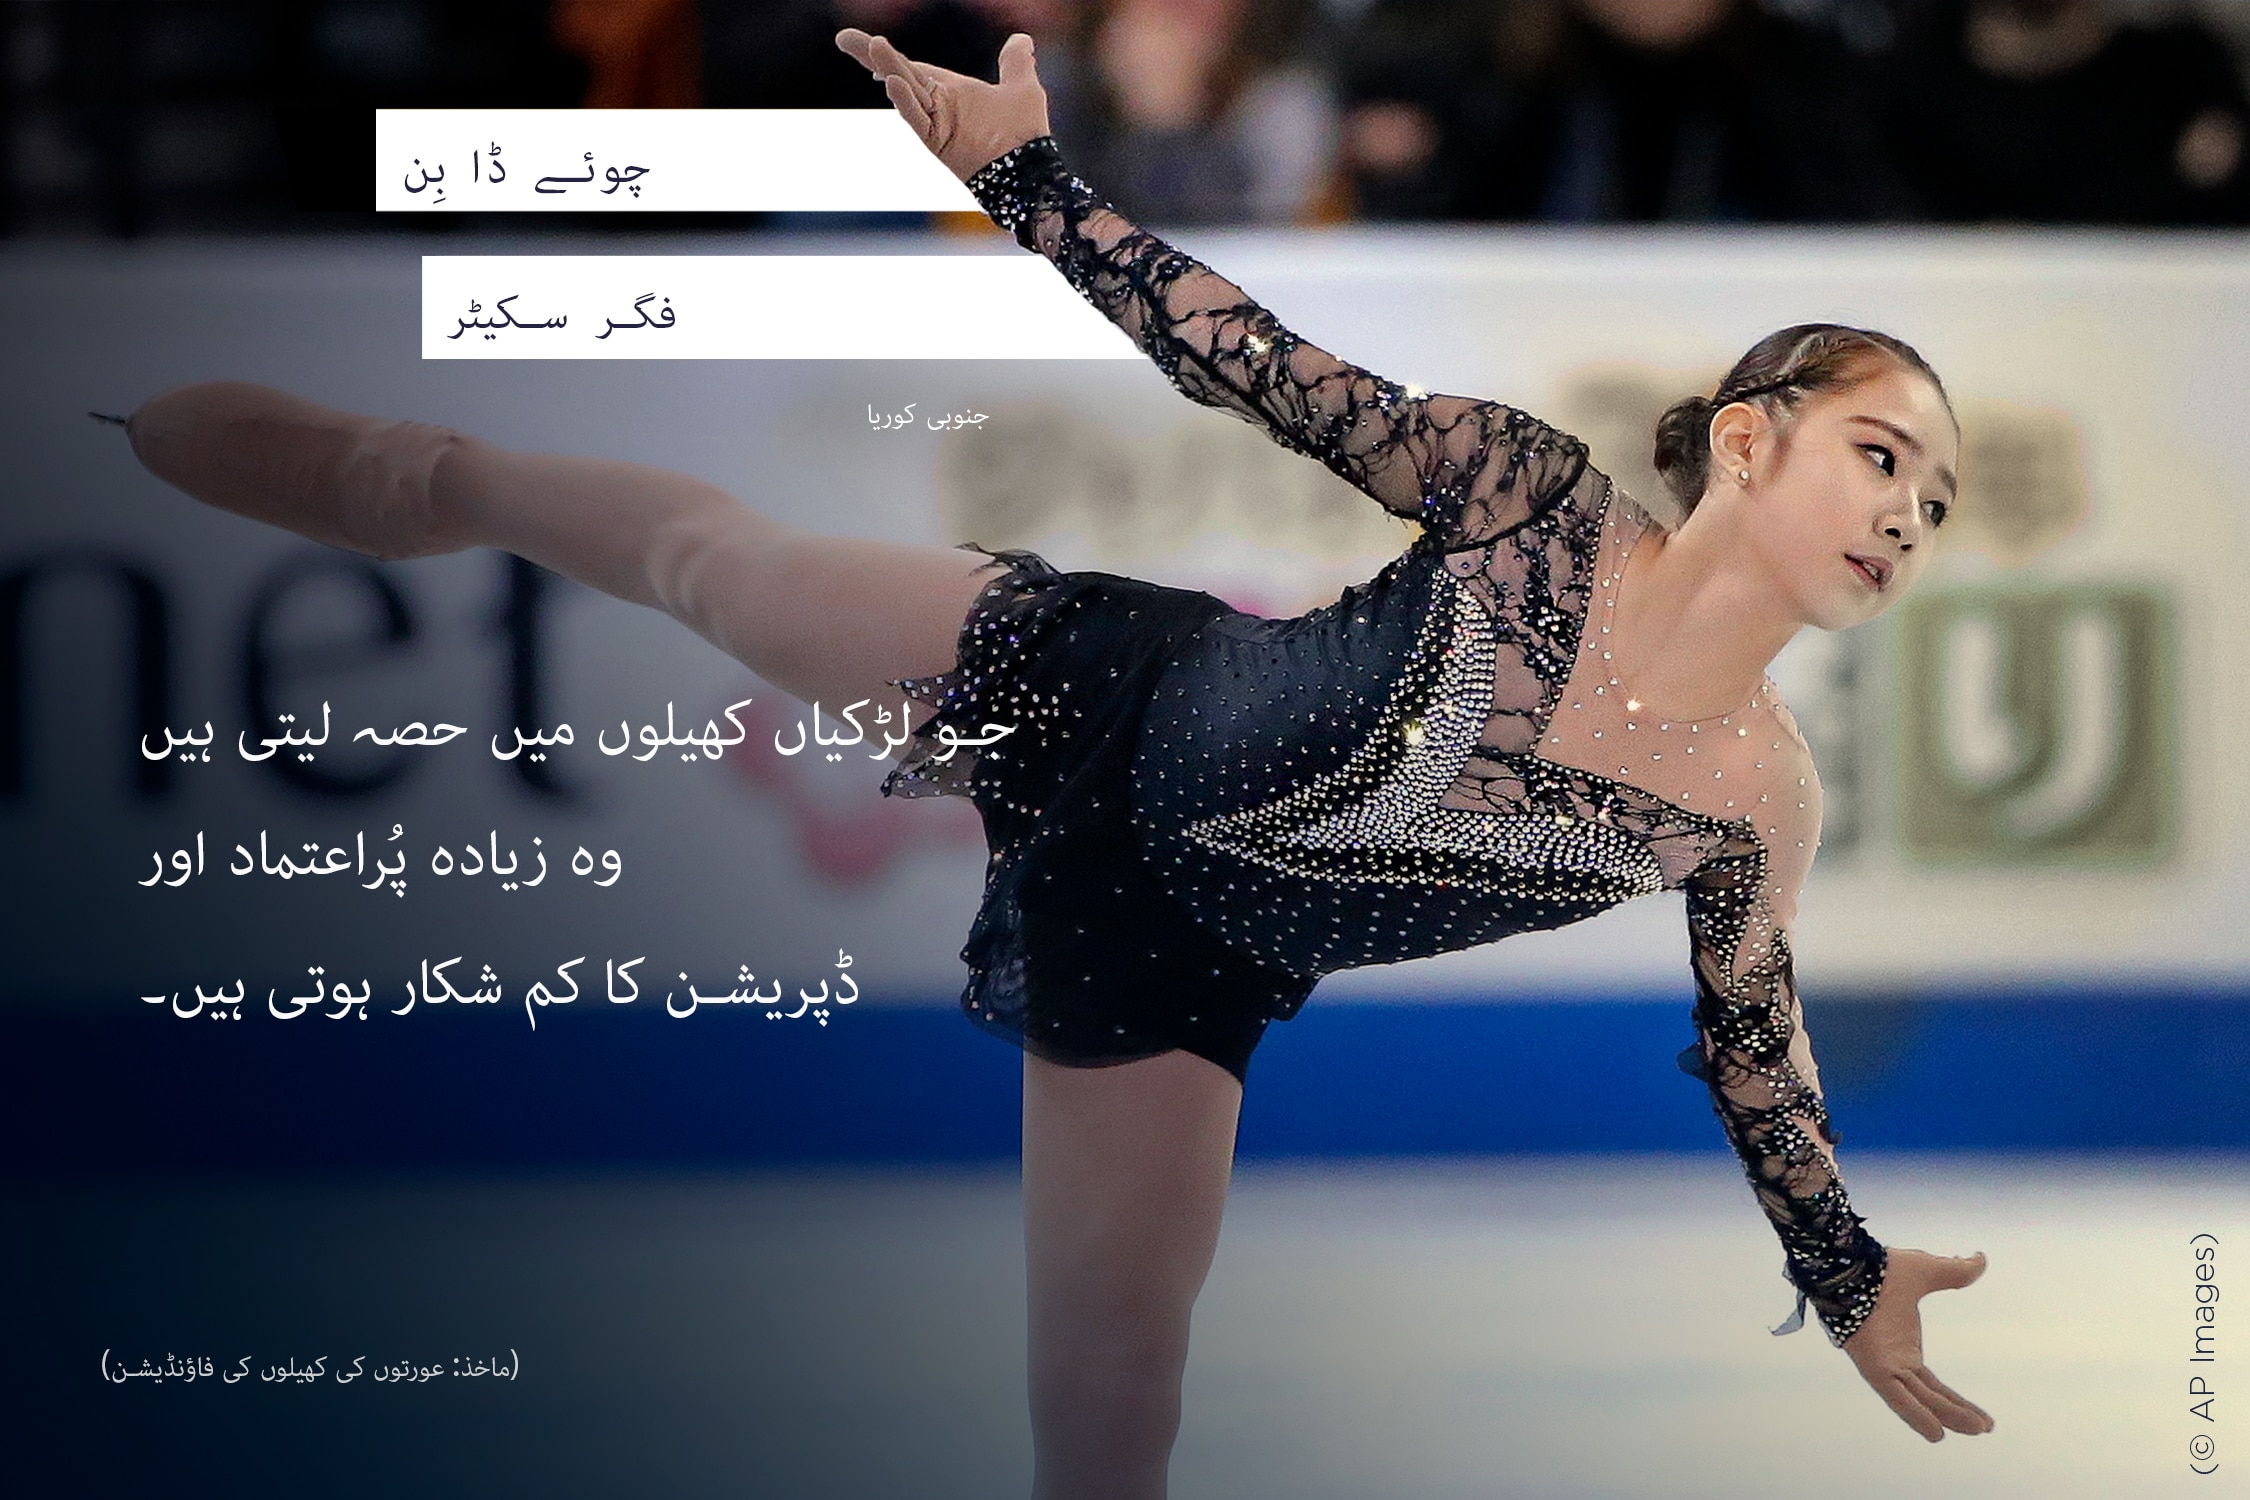 Figure skater skating, with words overlaid (© AP Images)